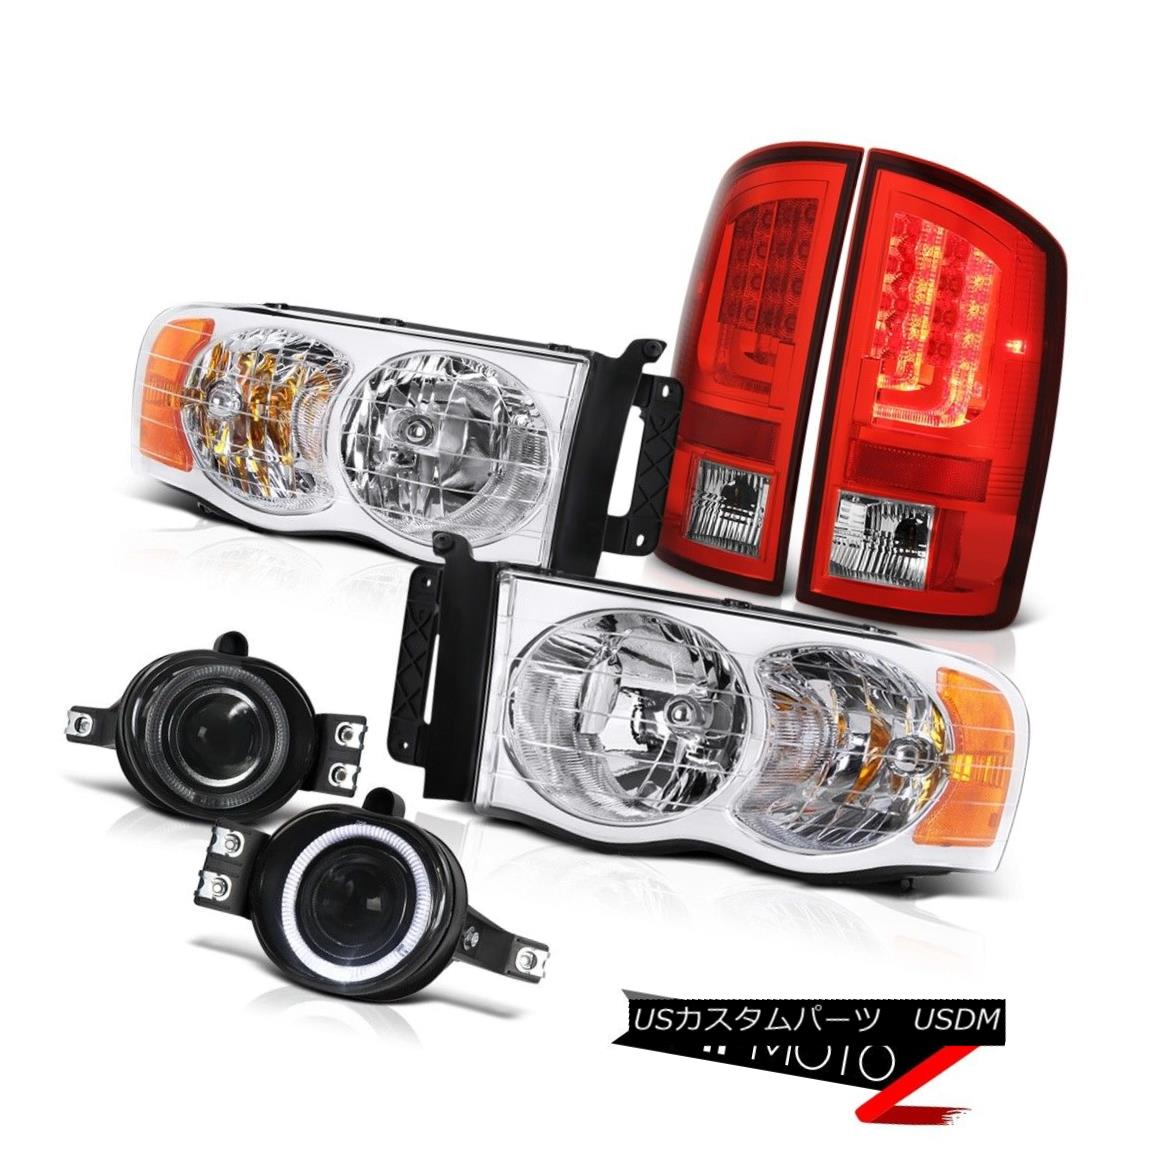 テールライト 2002-2005 Dodge Ram 1500 5.7L Tail Lights Headlamps Foglamps FroSTy Neon Tube 2002-2005 Dodge Ram 1500 5.7LテールライトヘッドランプFoglamps FroSTy Neon Tube